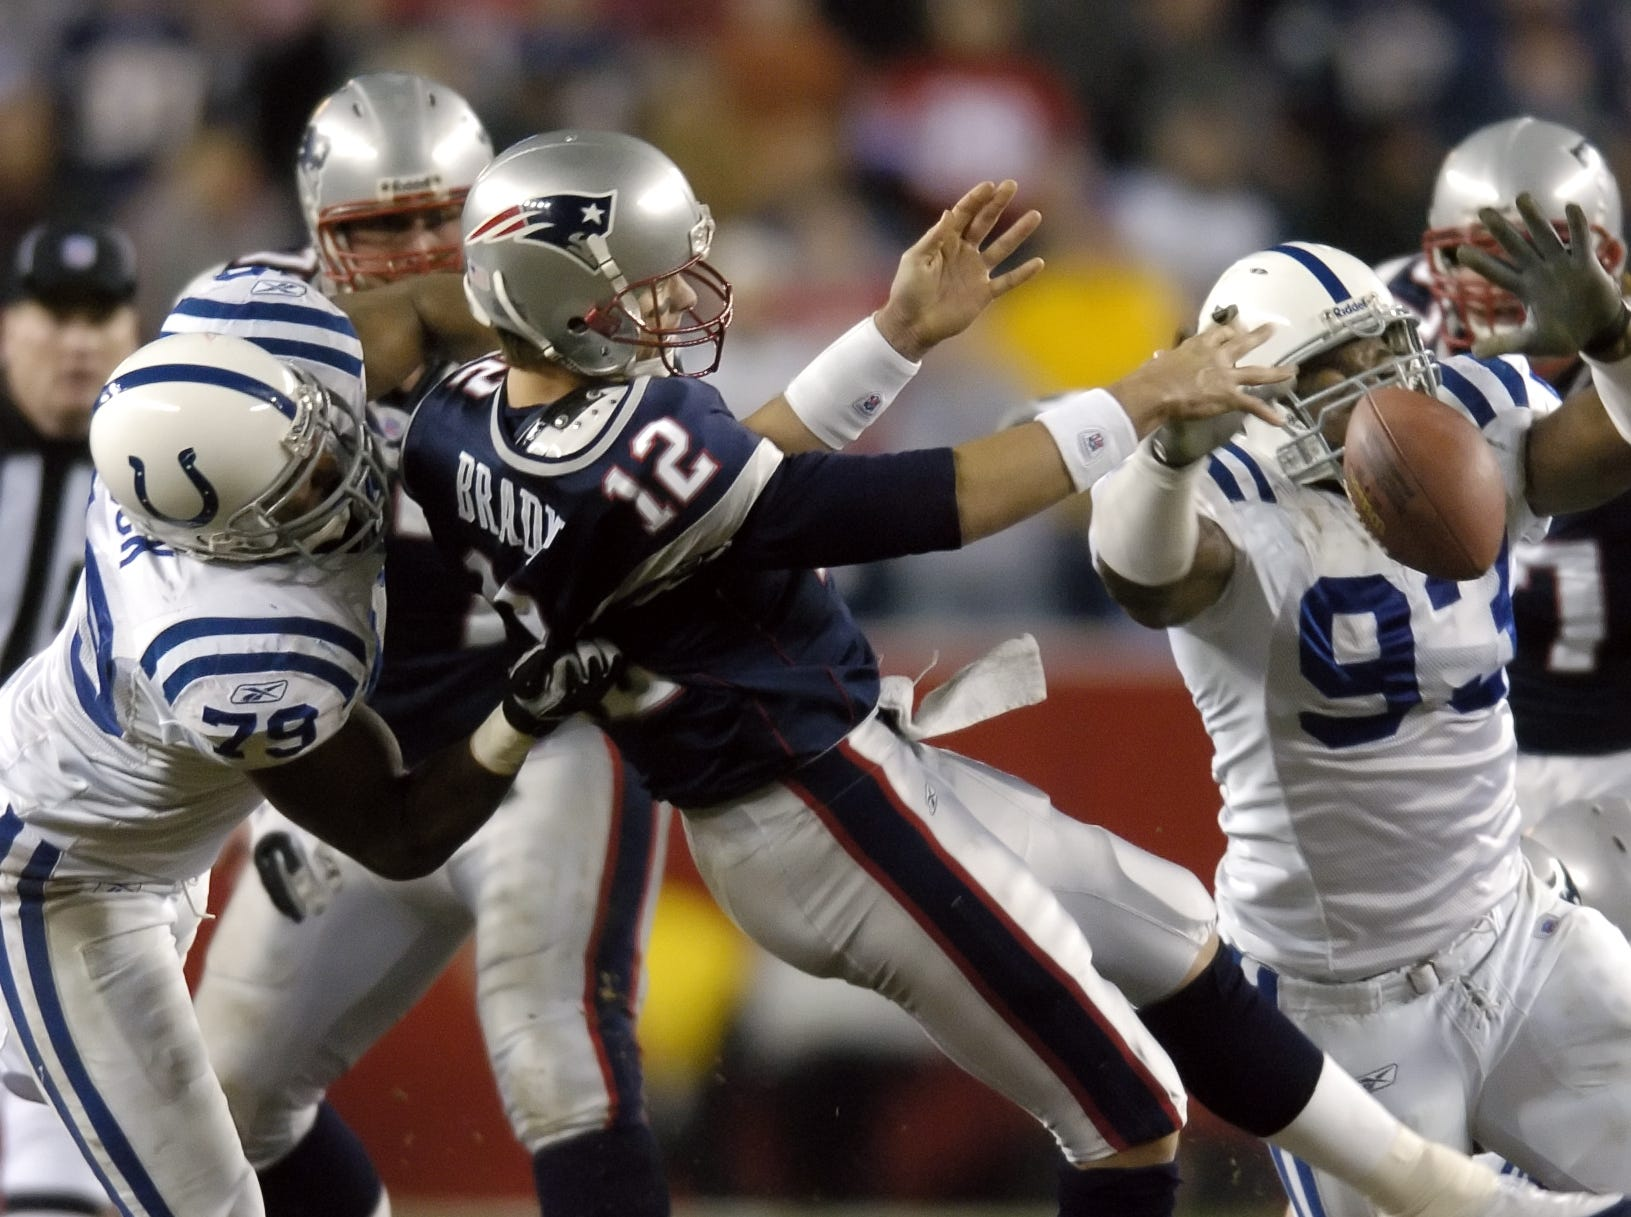 New England Patriots quarterback Tom Brady fumbles the ball under pressure from Indianapolis Colts Raheem Brock and Dwight Freeney at Gillette Stadium in Foxboro MA. on Nov 7, 2005.